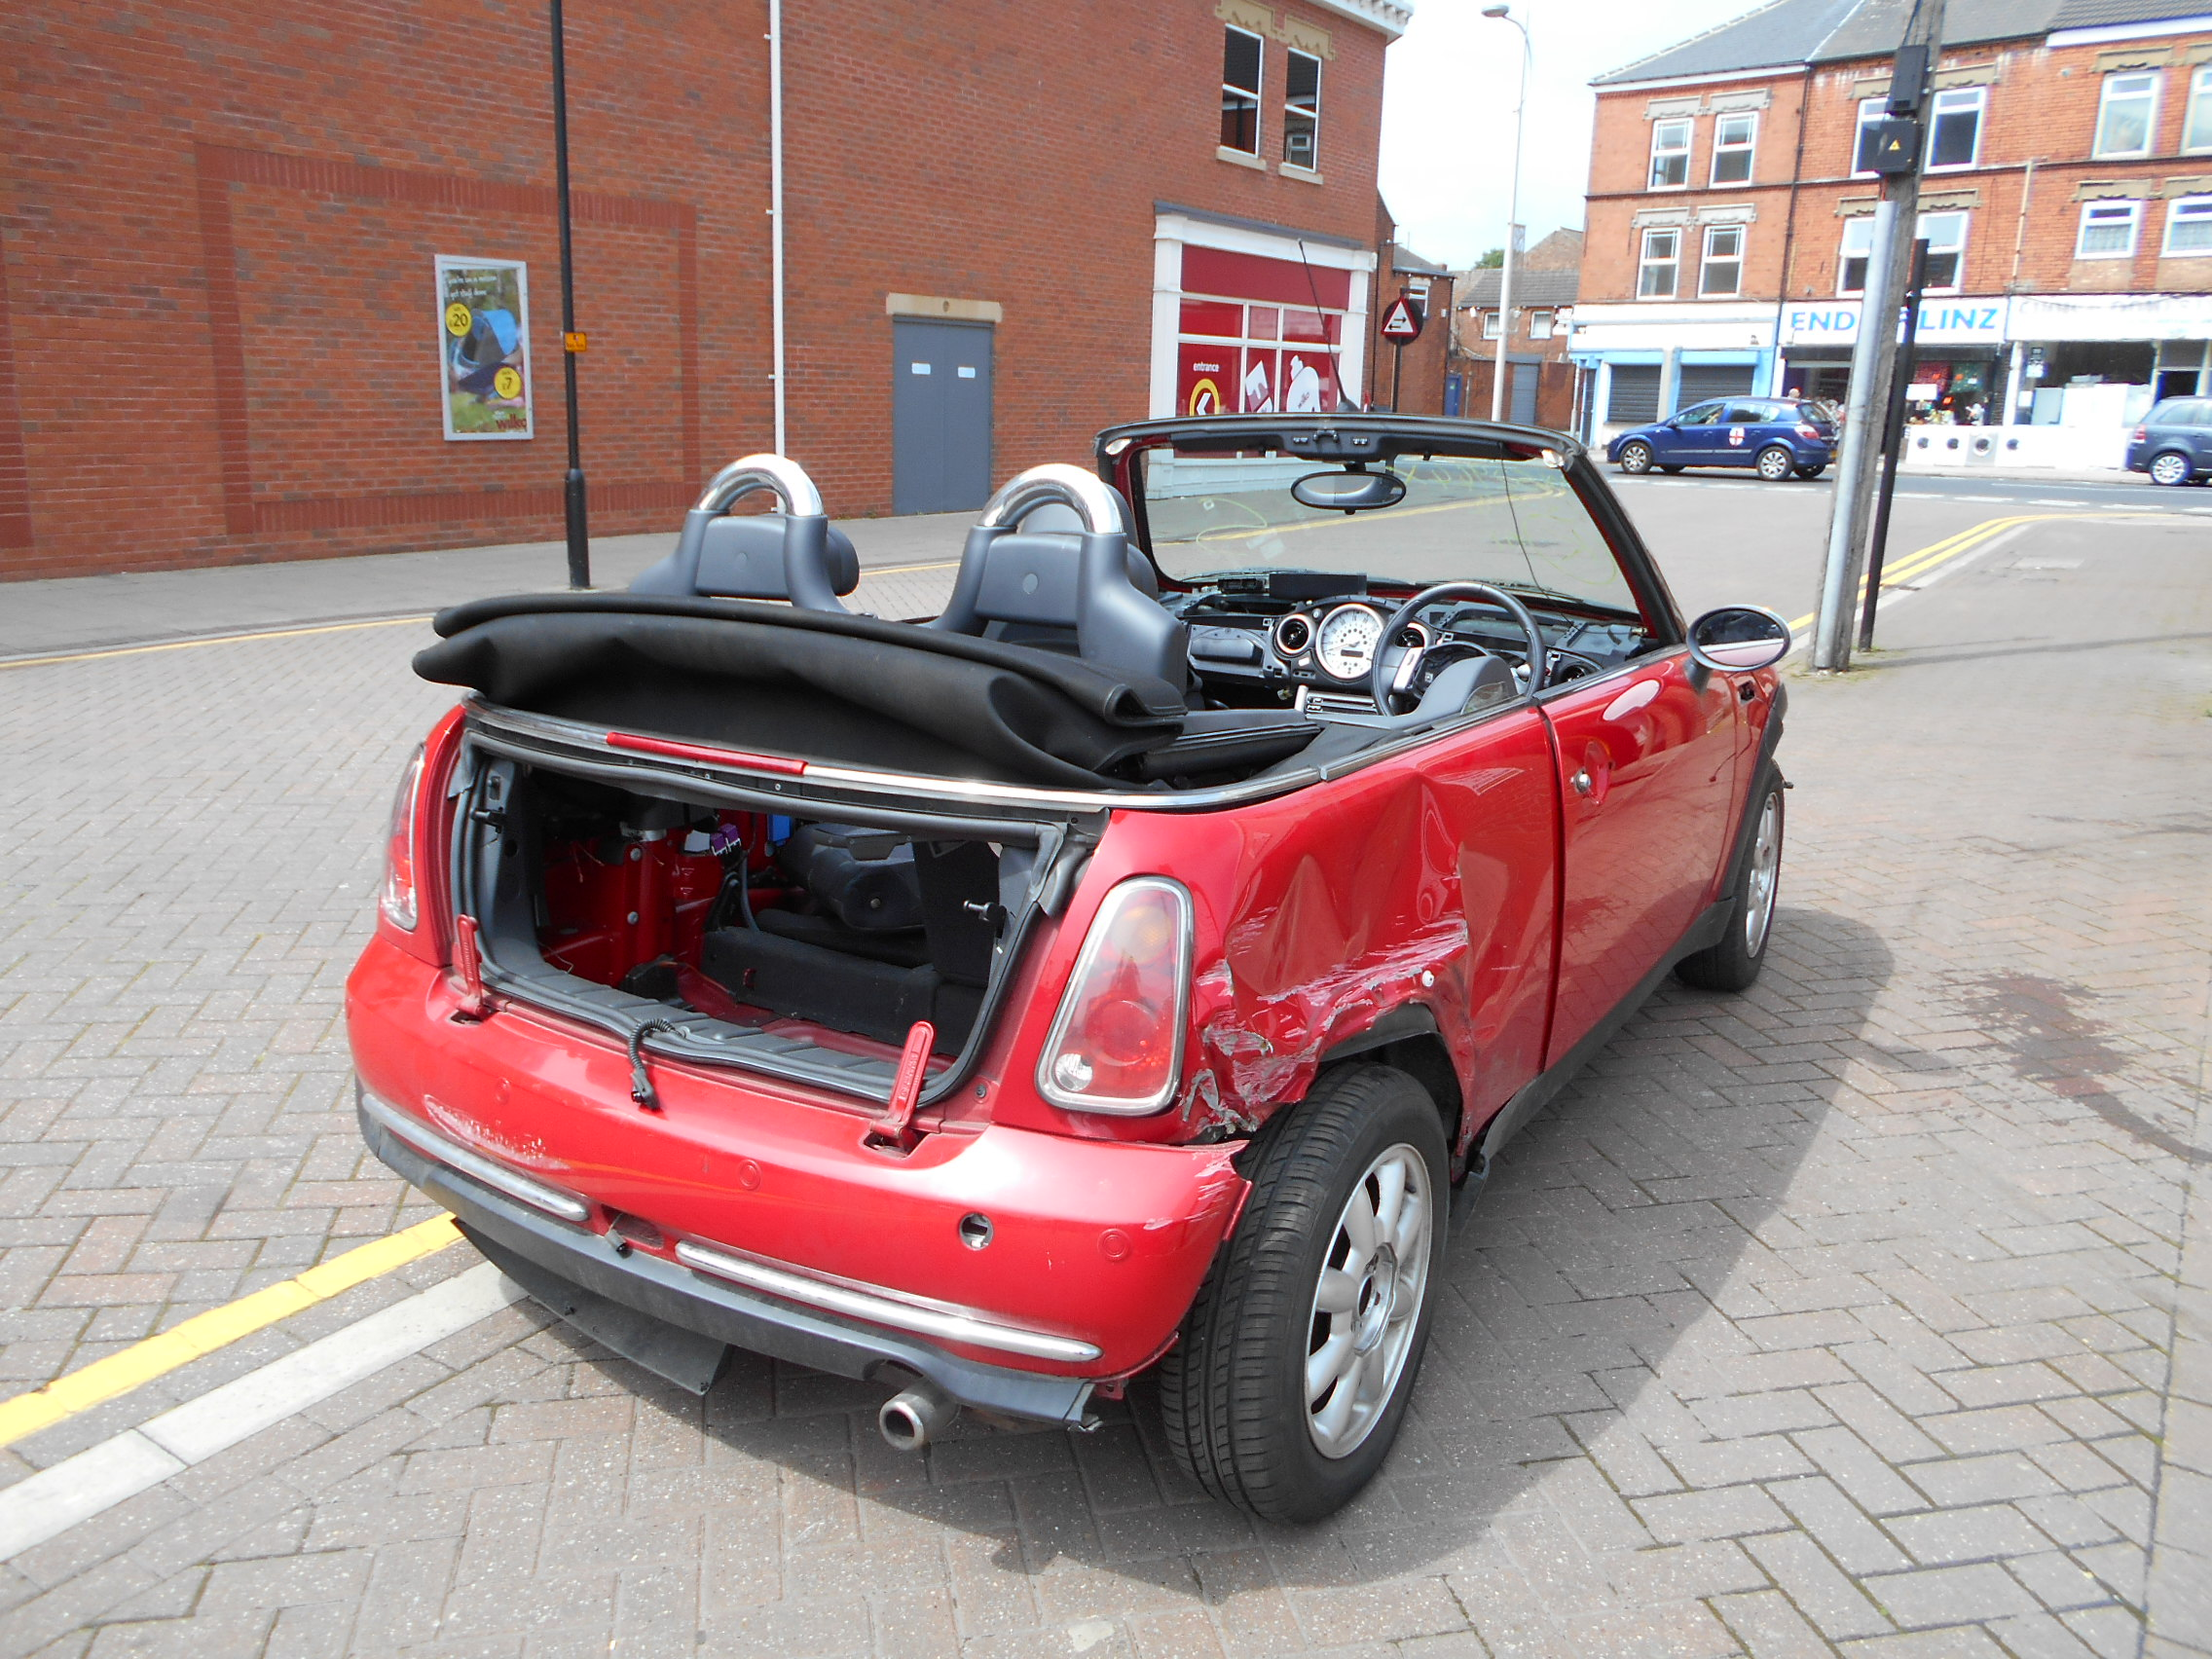 04 Chilli Red 1.6 BMW Mini Convertible - 6